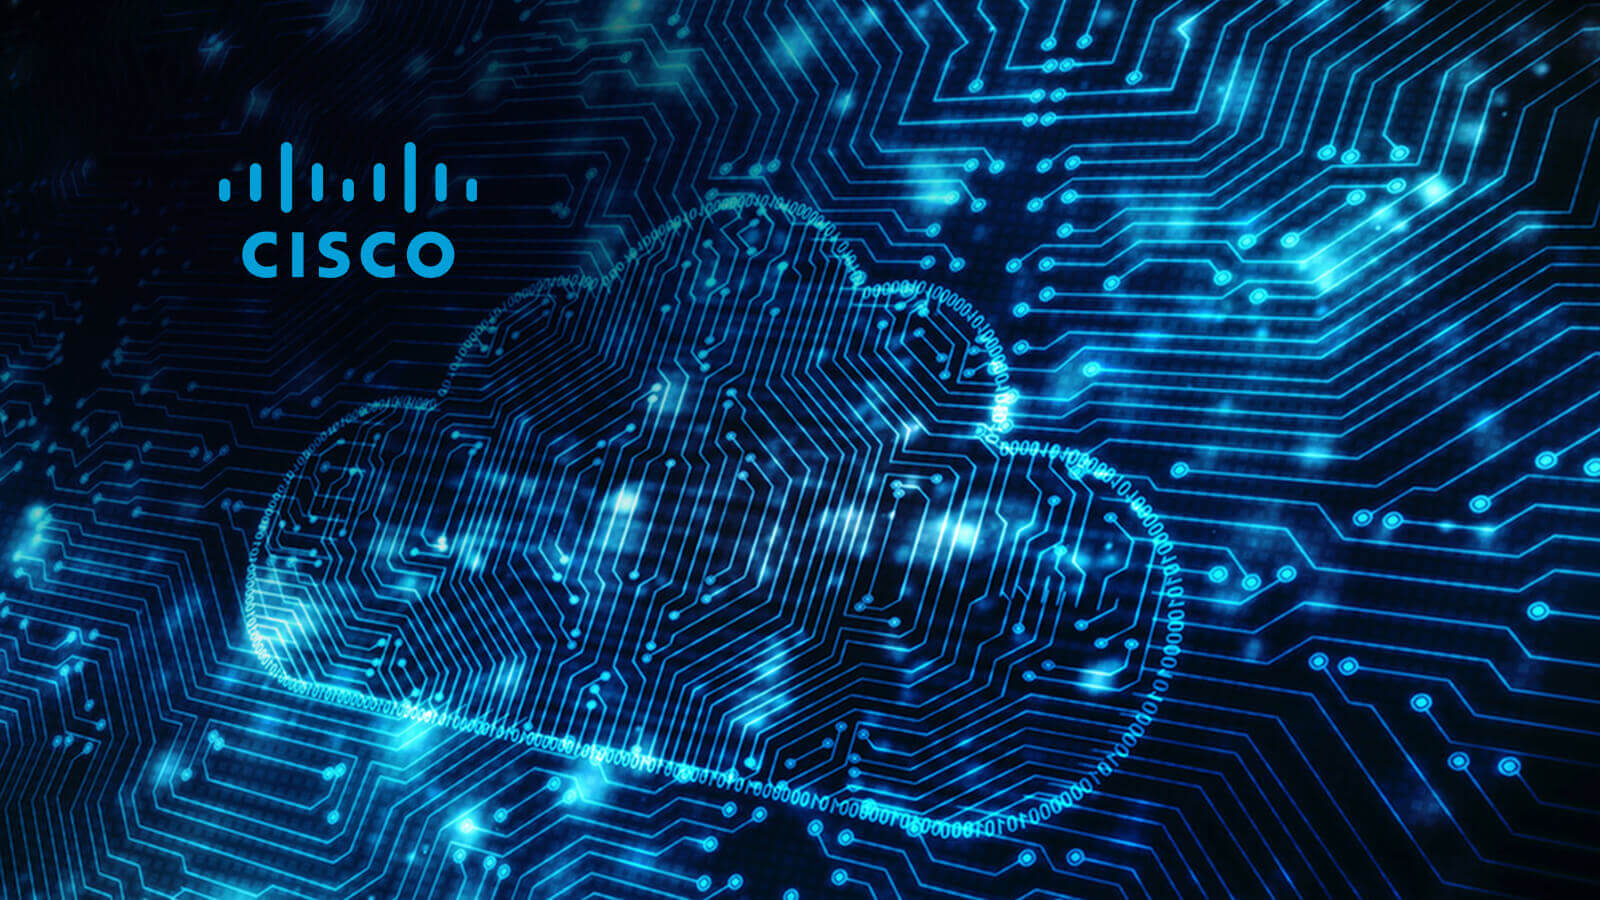 Cisco announces innovations in artificial intelligence and machine learning